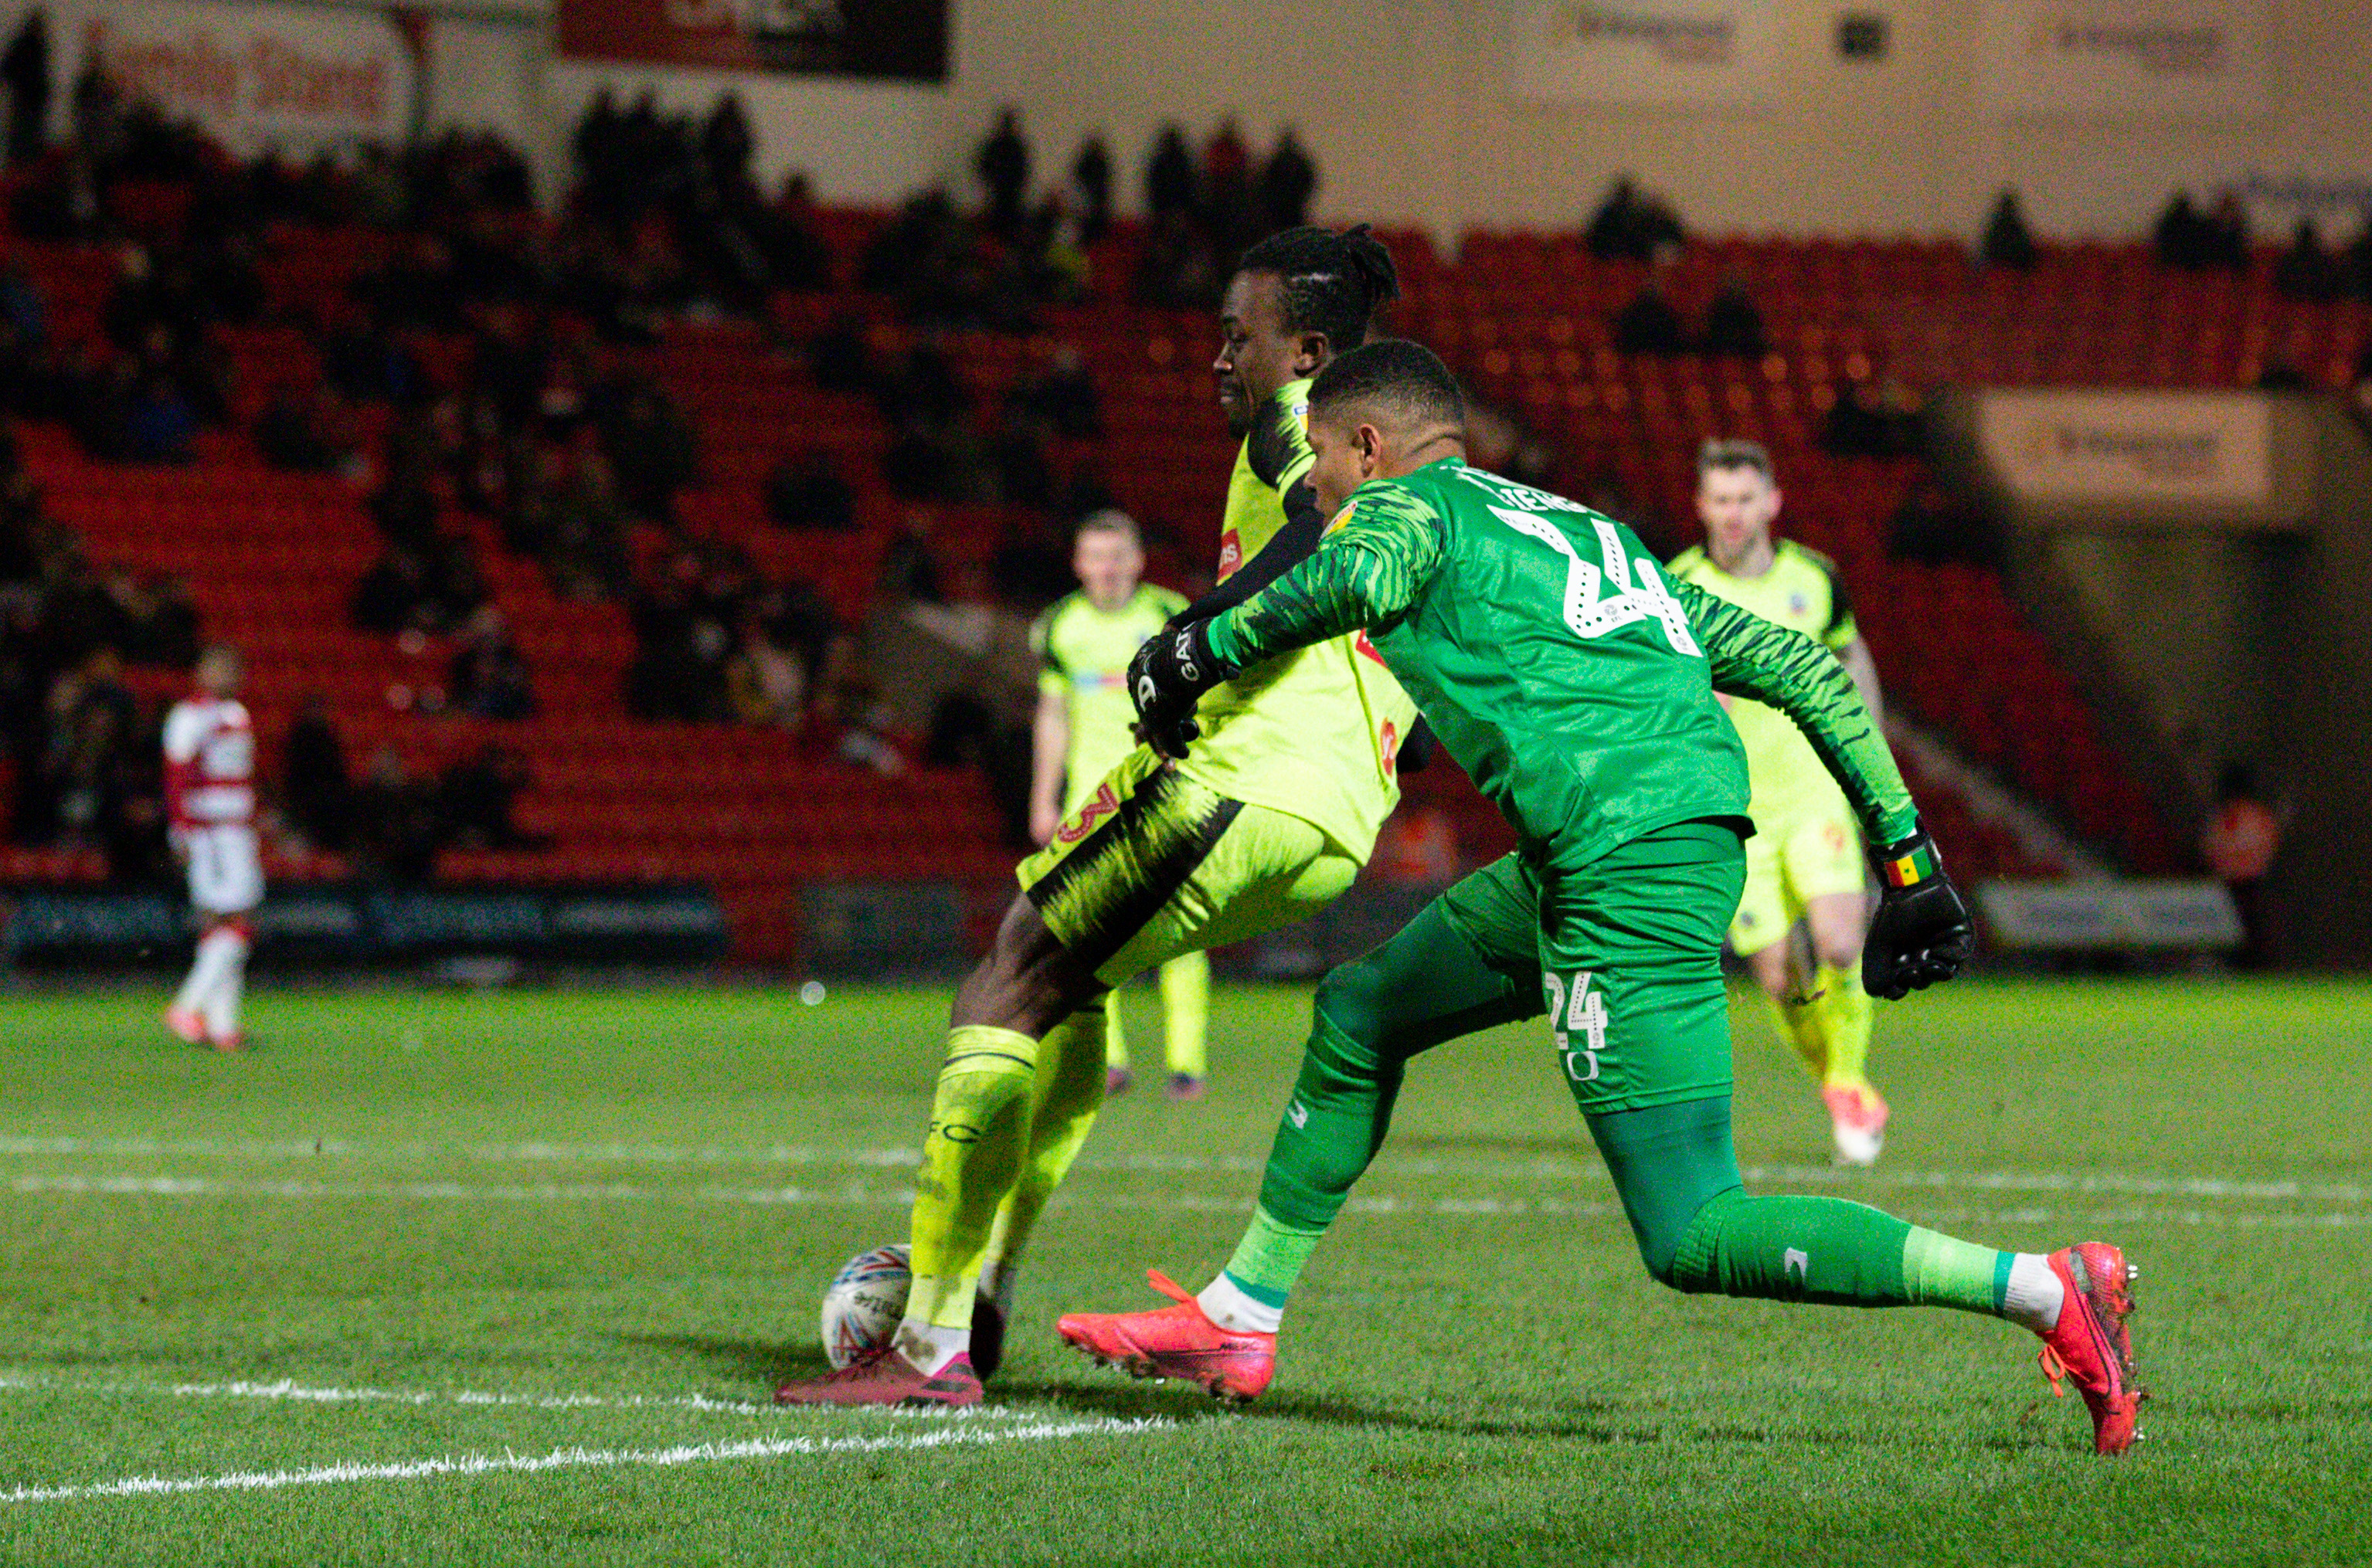 Doncaster Rovers v Bolton Wanderers - Sky Bet League One